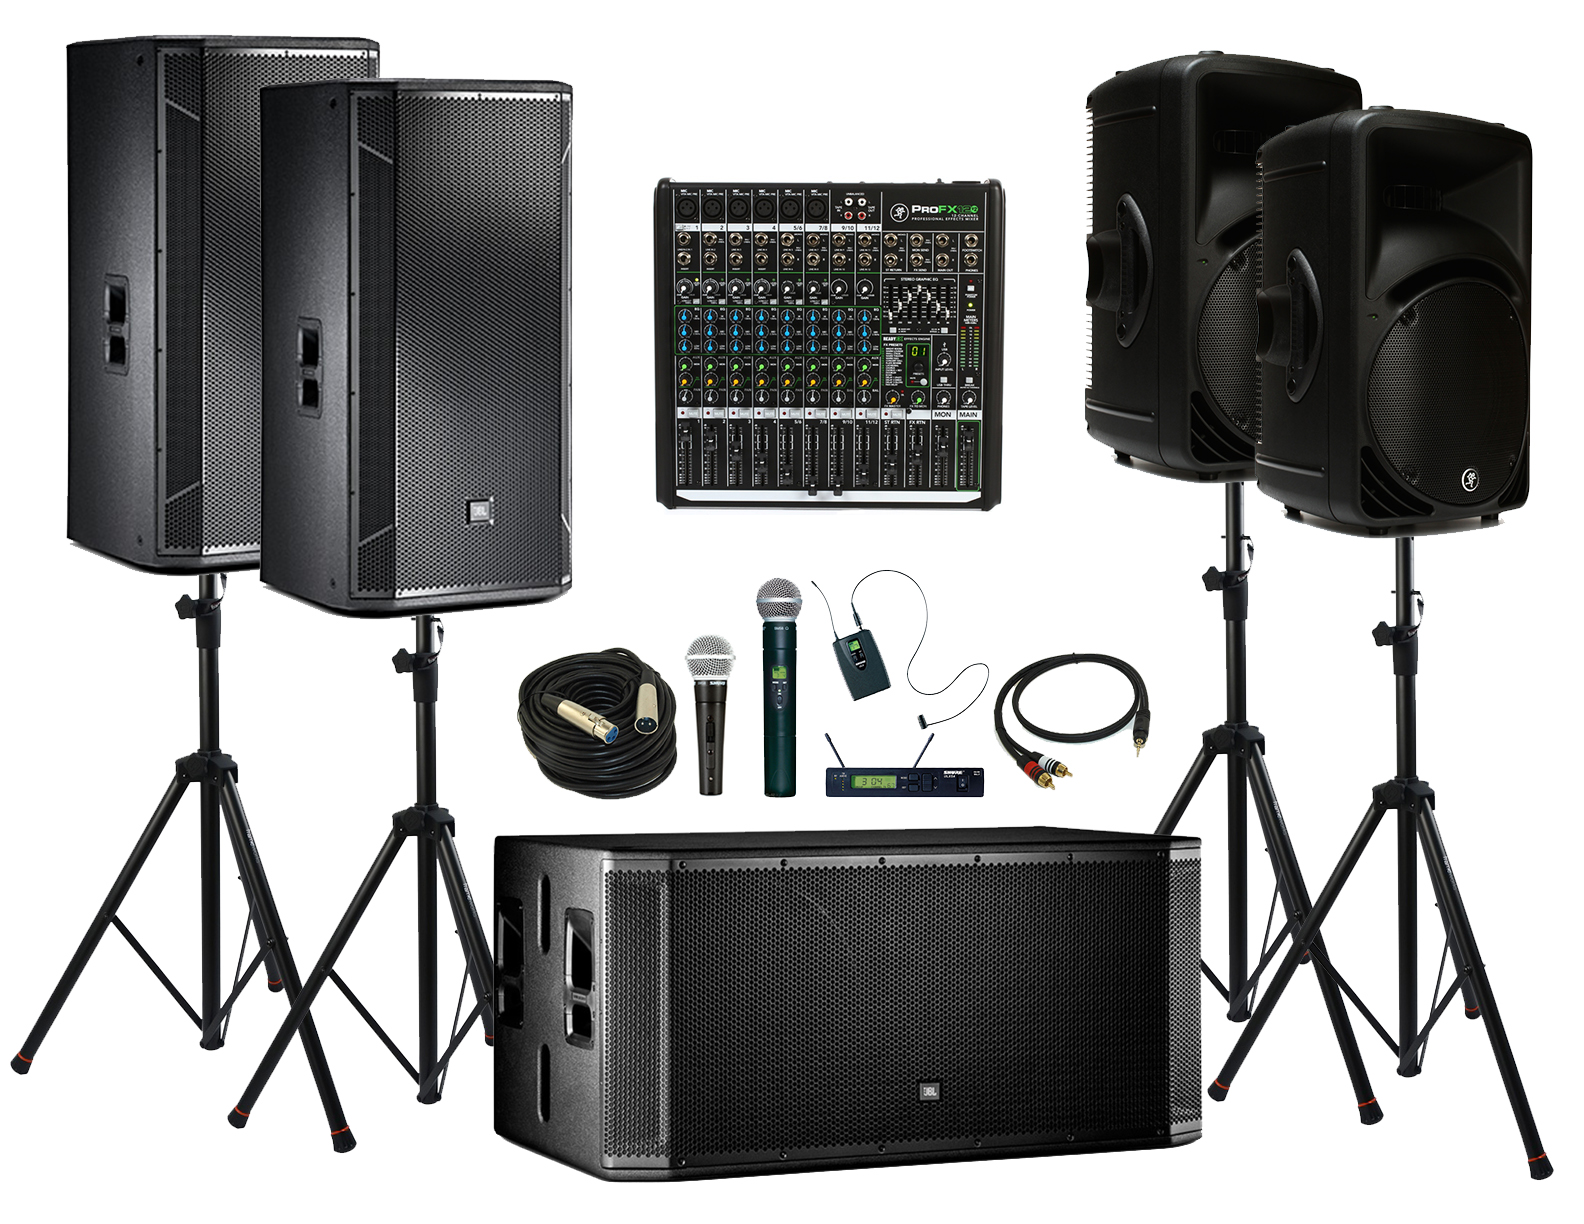 Large Event Concert Sound System Rental In Kansas City